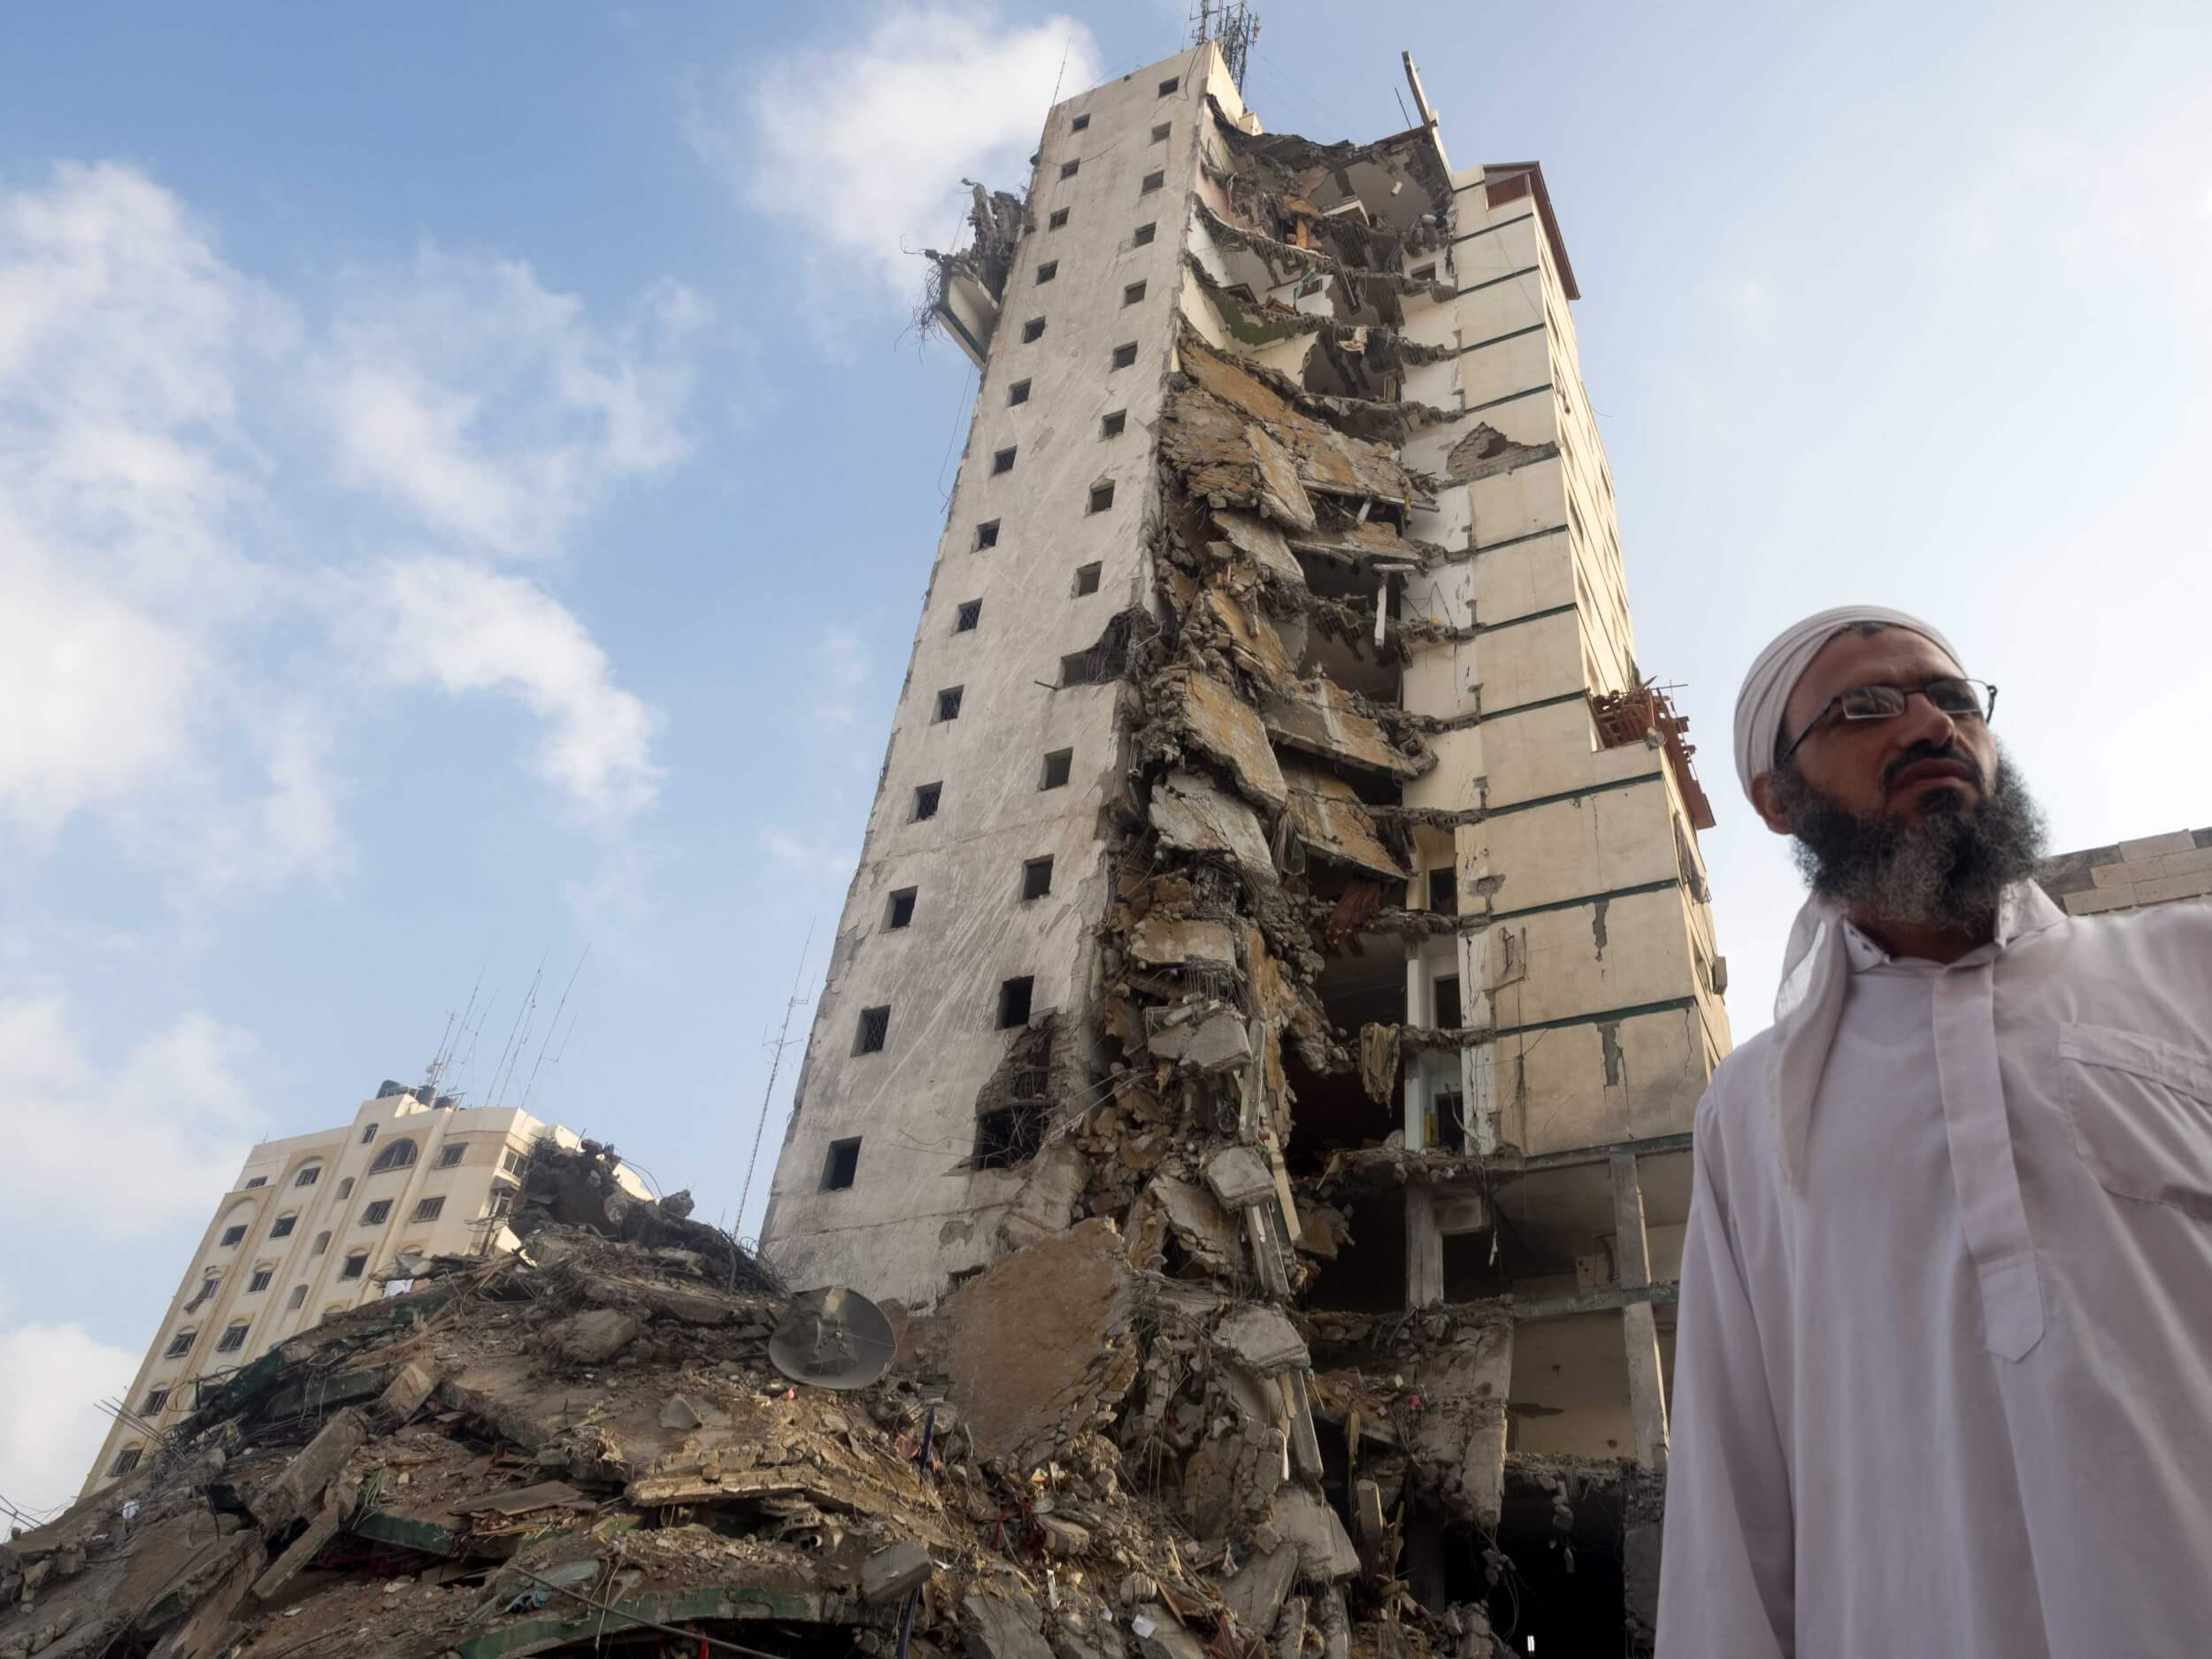 A resident of the Italian Compound stands in front of the destroyed building. (Photo: Dan Cohen)